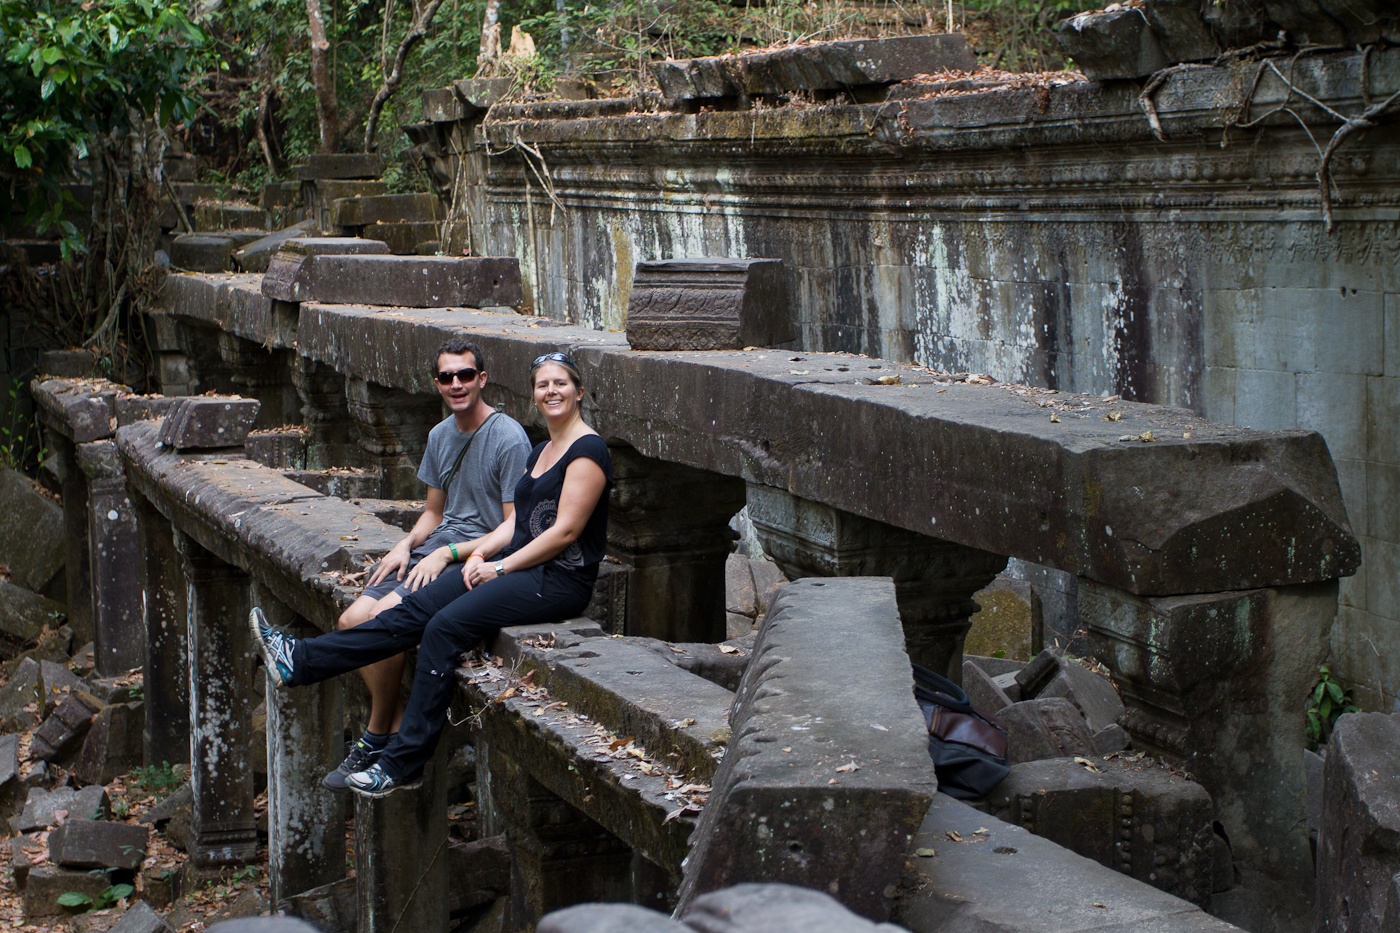 Taking a break at Beng Melea Temple.